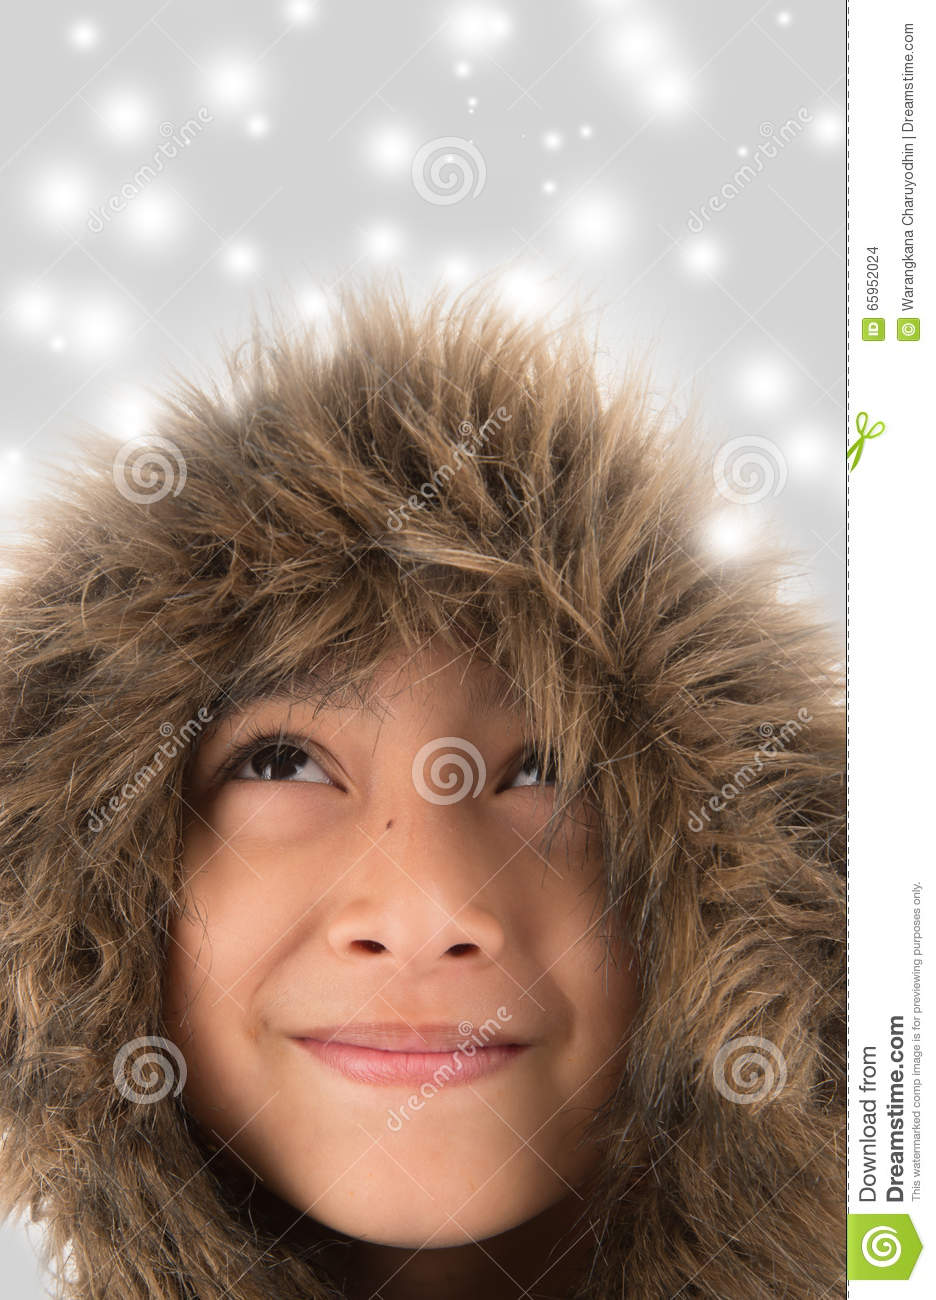 Cute Little Girl Wearing A White Fur Coat And Hat Stock